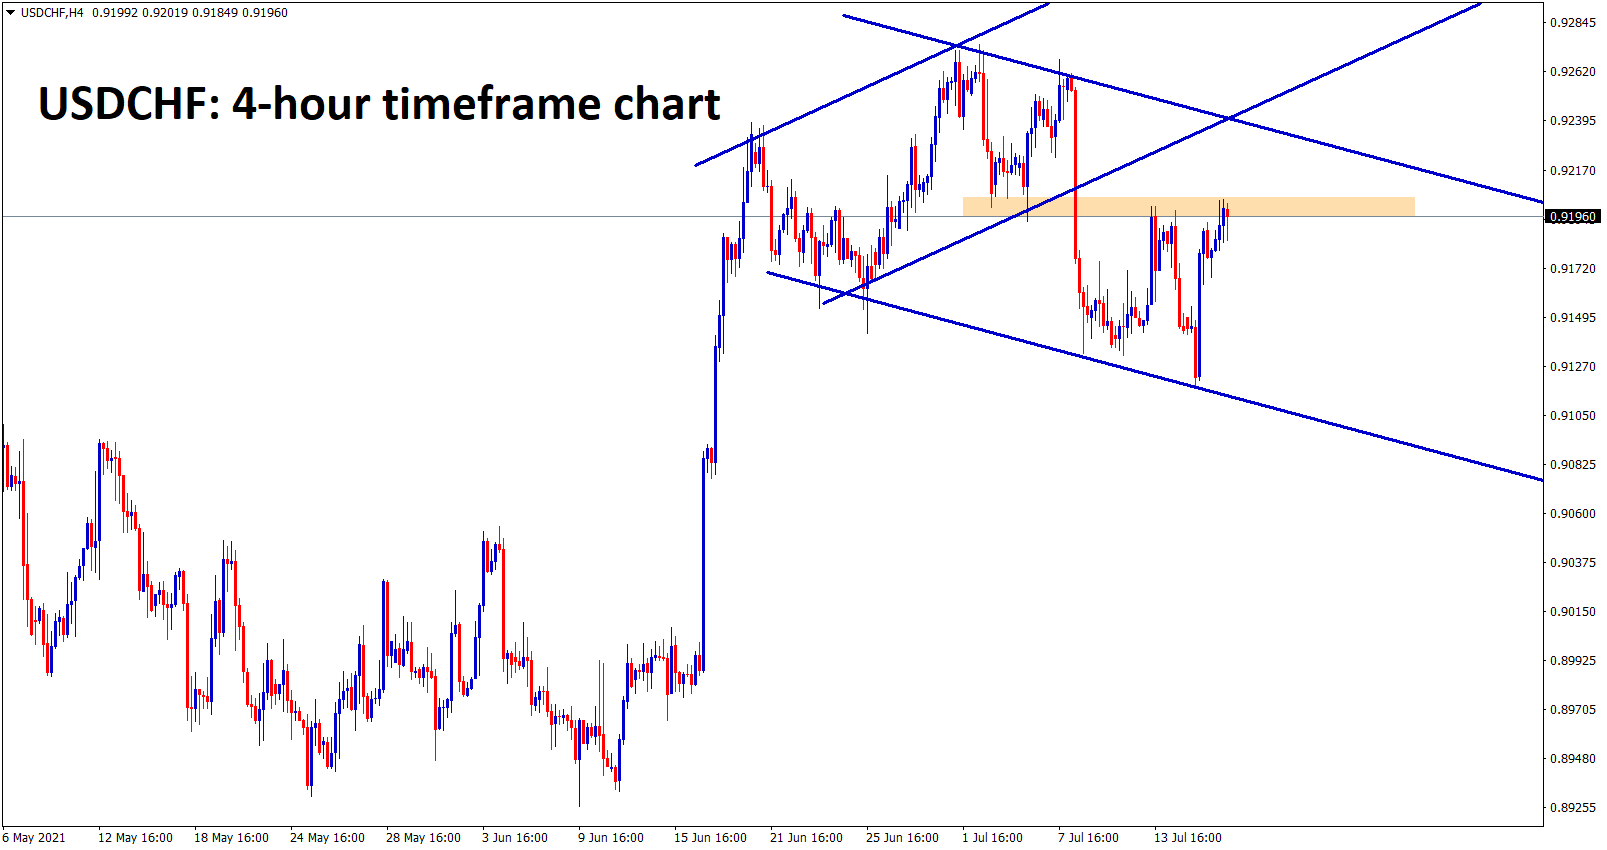 USDCHF is moving up and down between the channel and SR levels